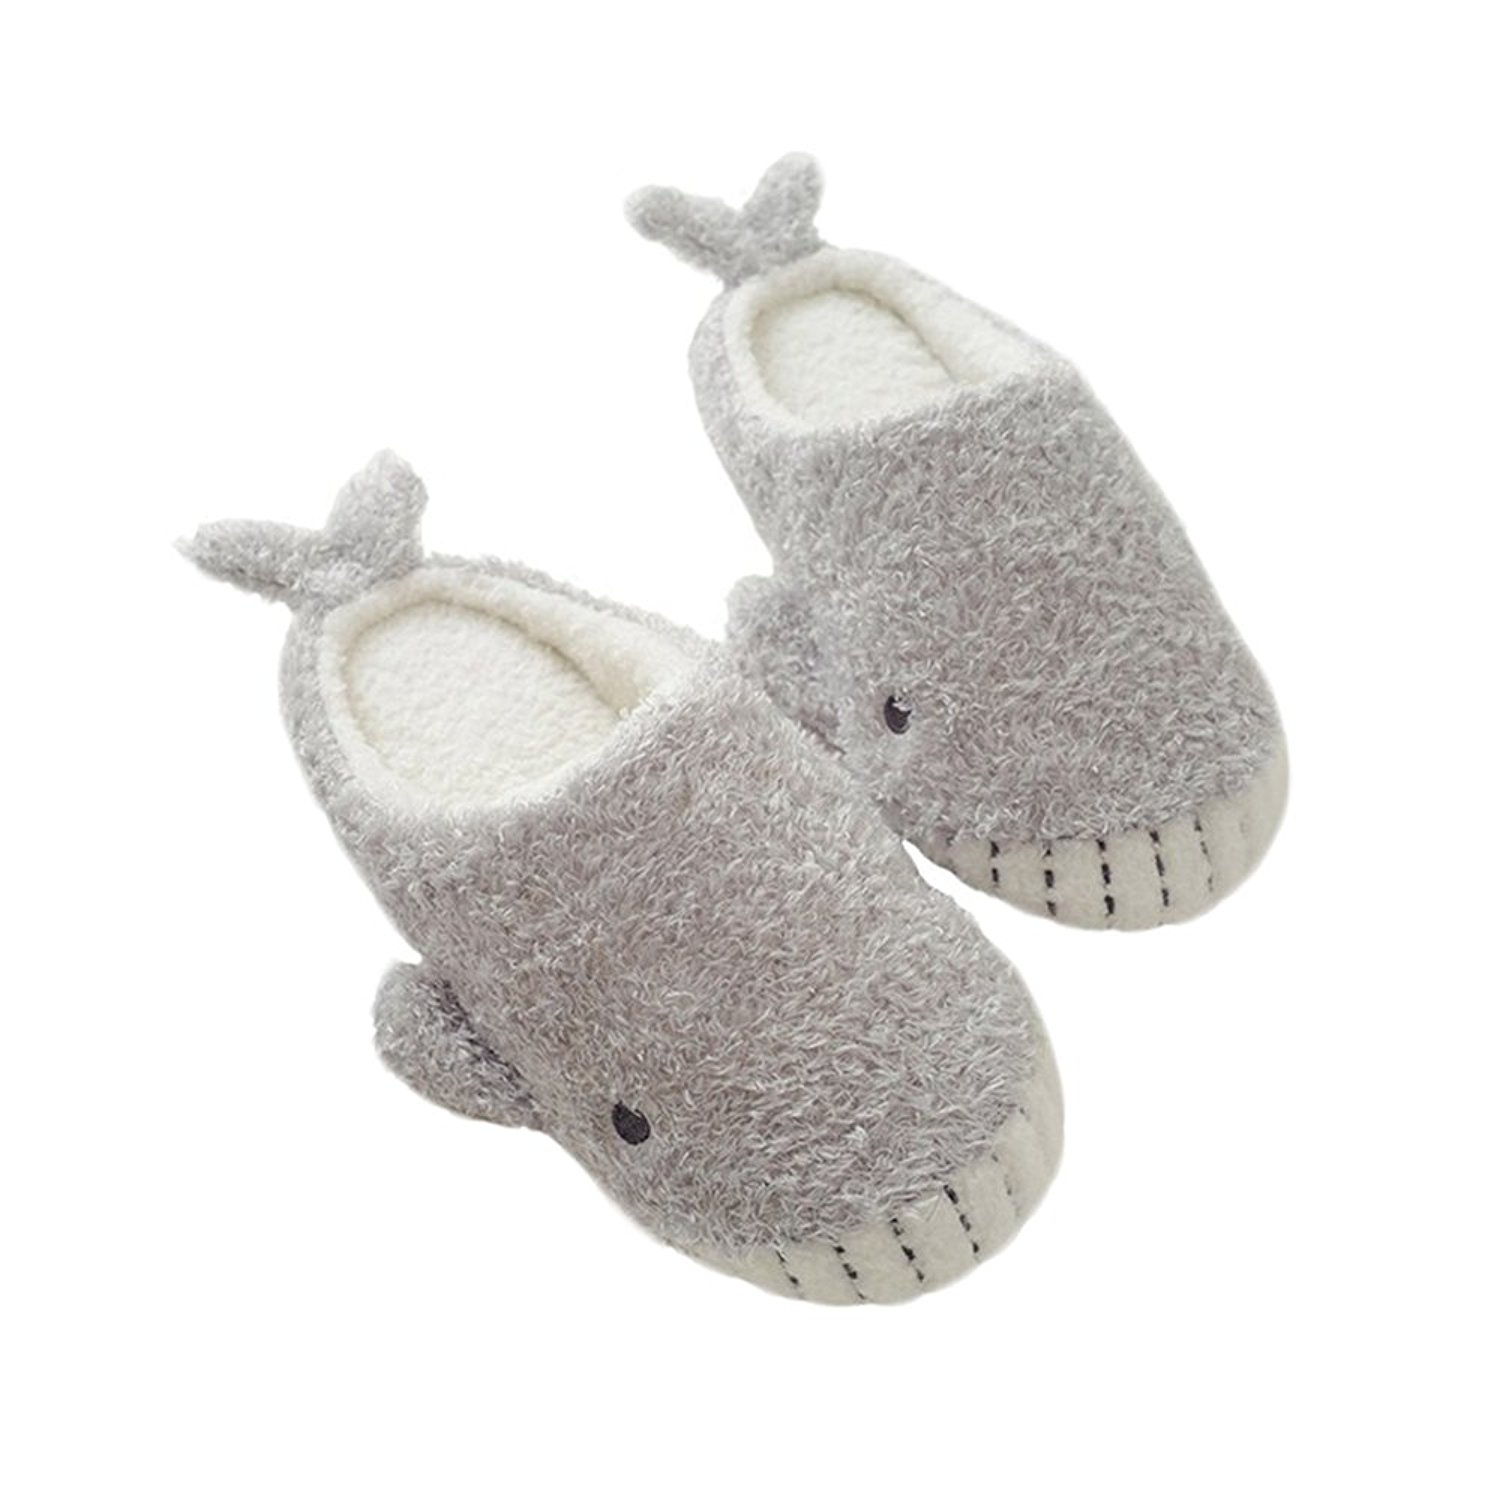 SOCOMP Women's Cute Soft Plush Furry Animal Warm Cozy Home Winter Slippers Indoor Shoes for Bedroom Kitchen Dining Room(Gray Whale)